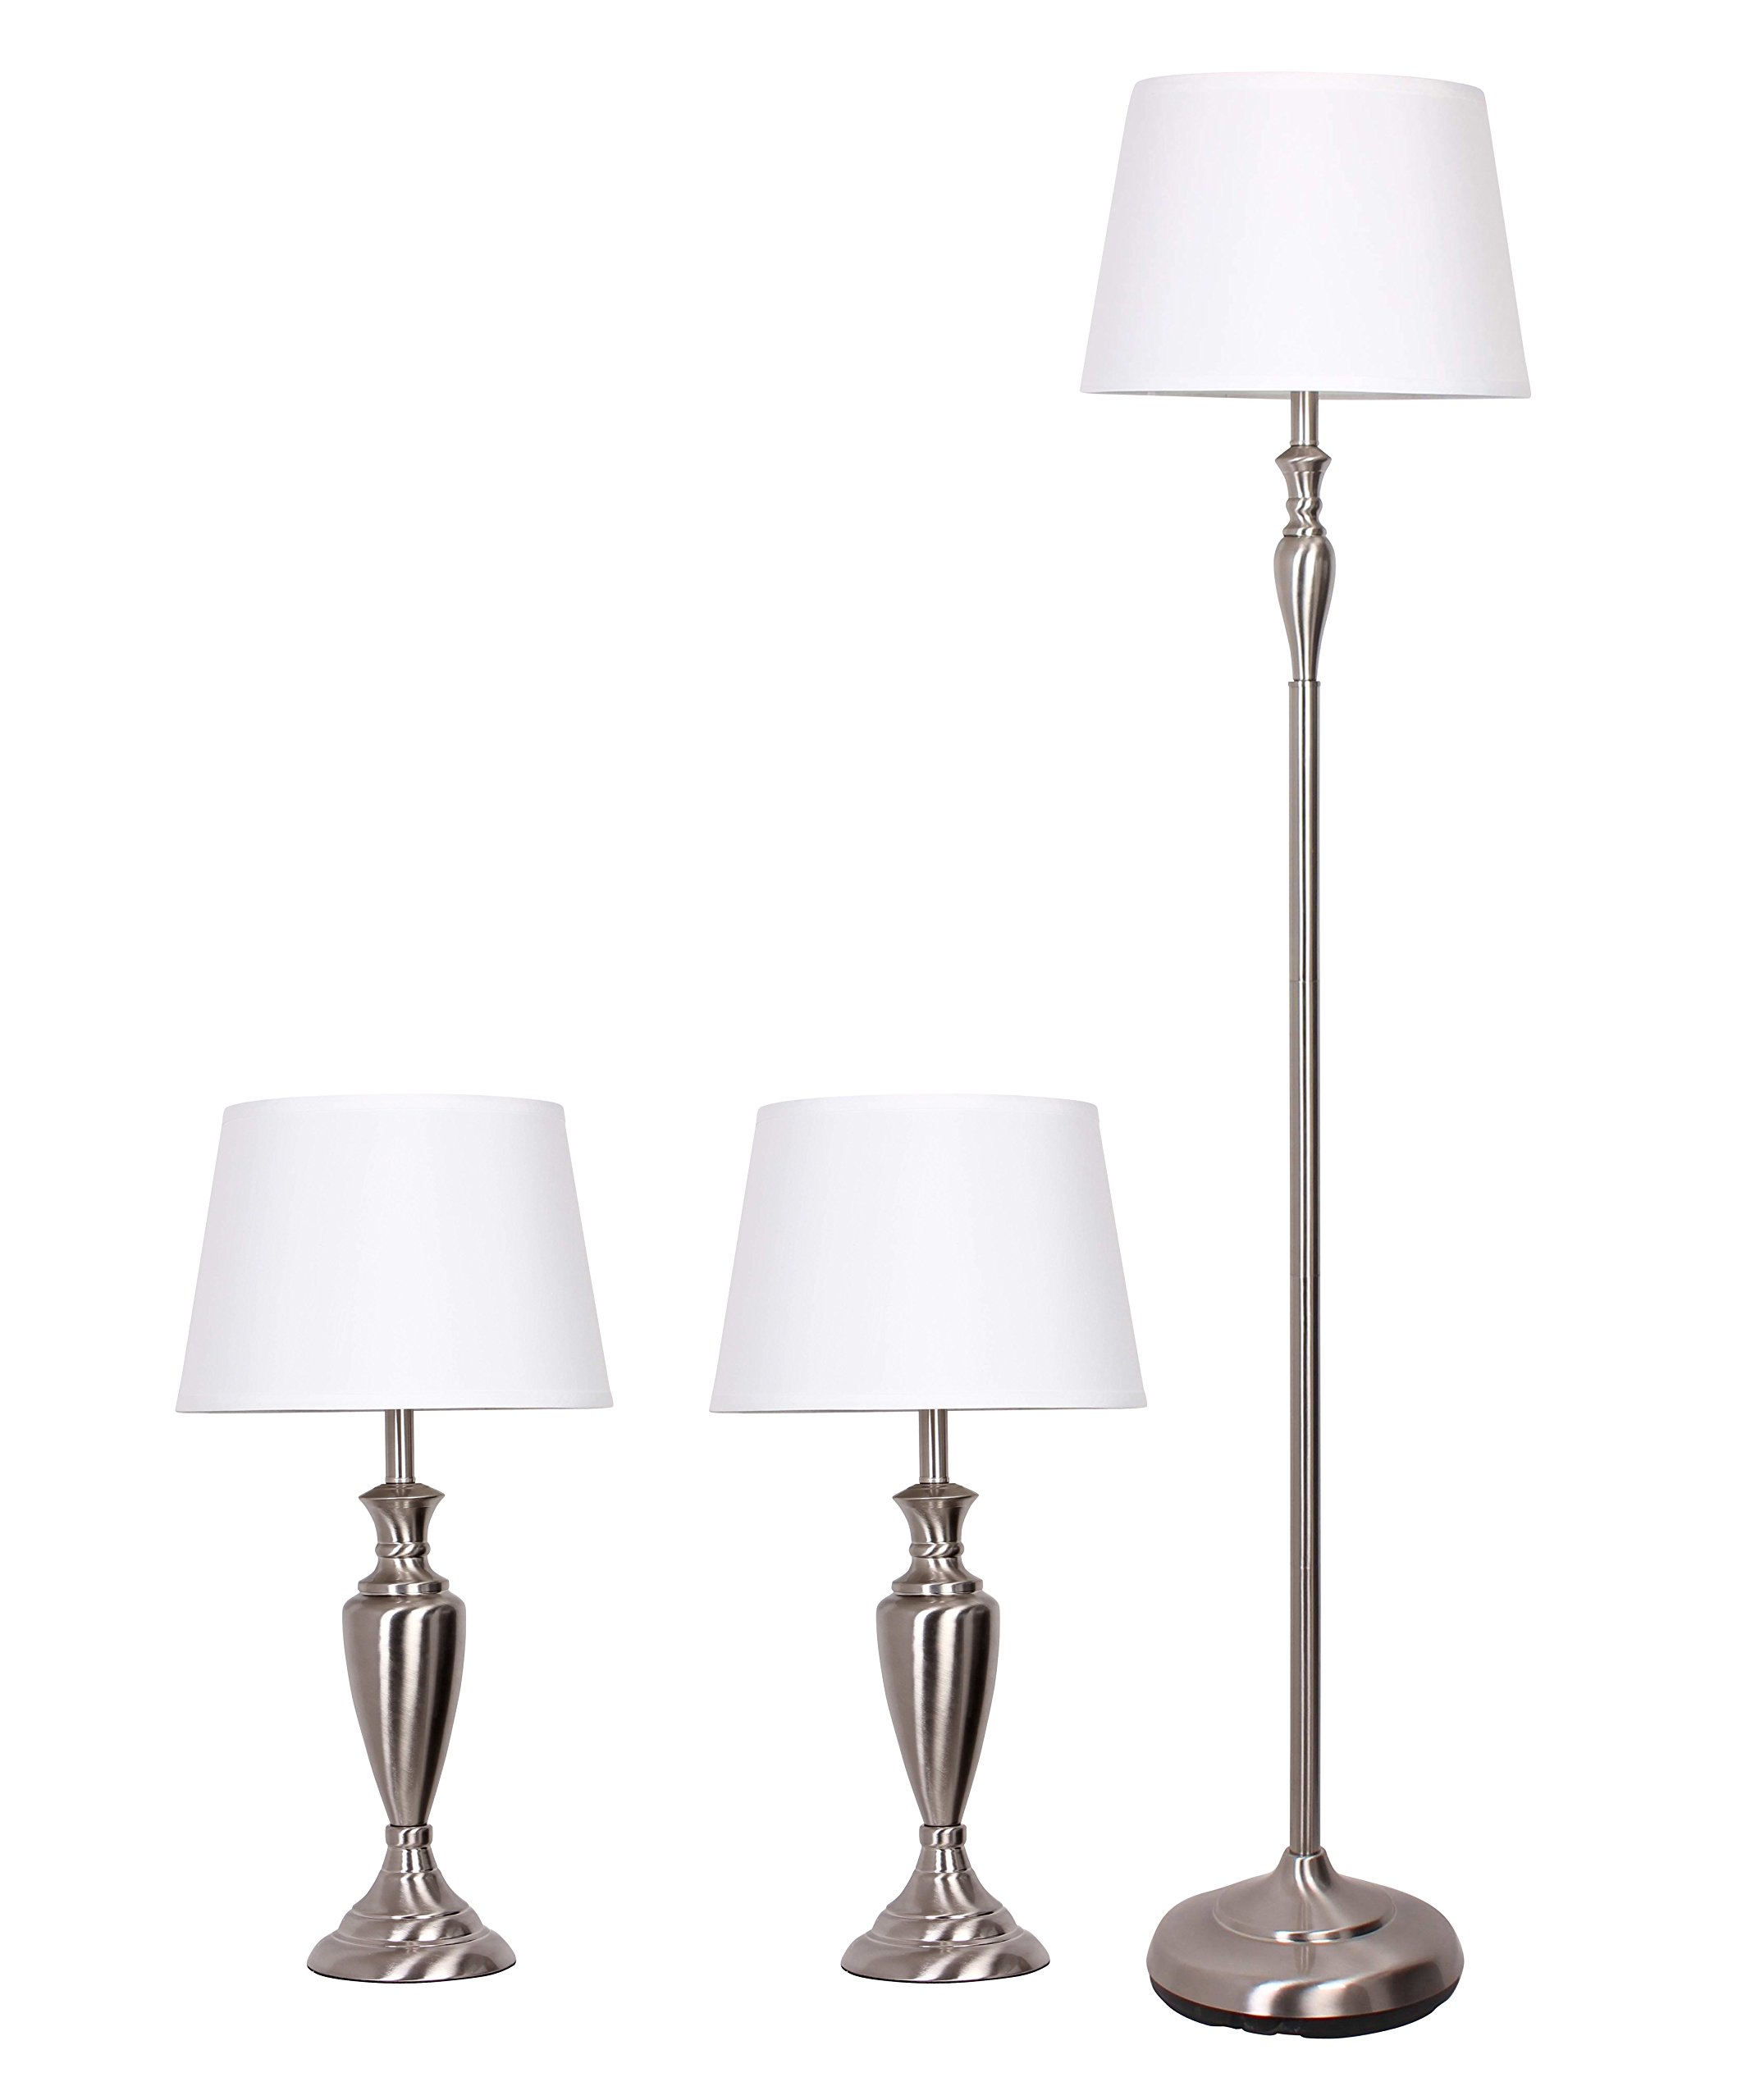 Catalina 18078-001 Combo 3-Piece Lamp Set with Brushed Nickel Finish and White Modified Drum Shades,